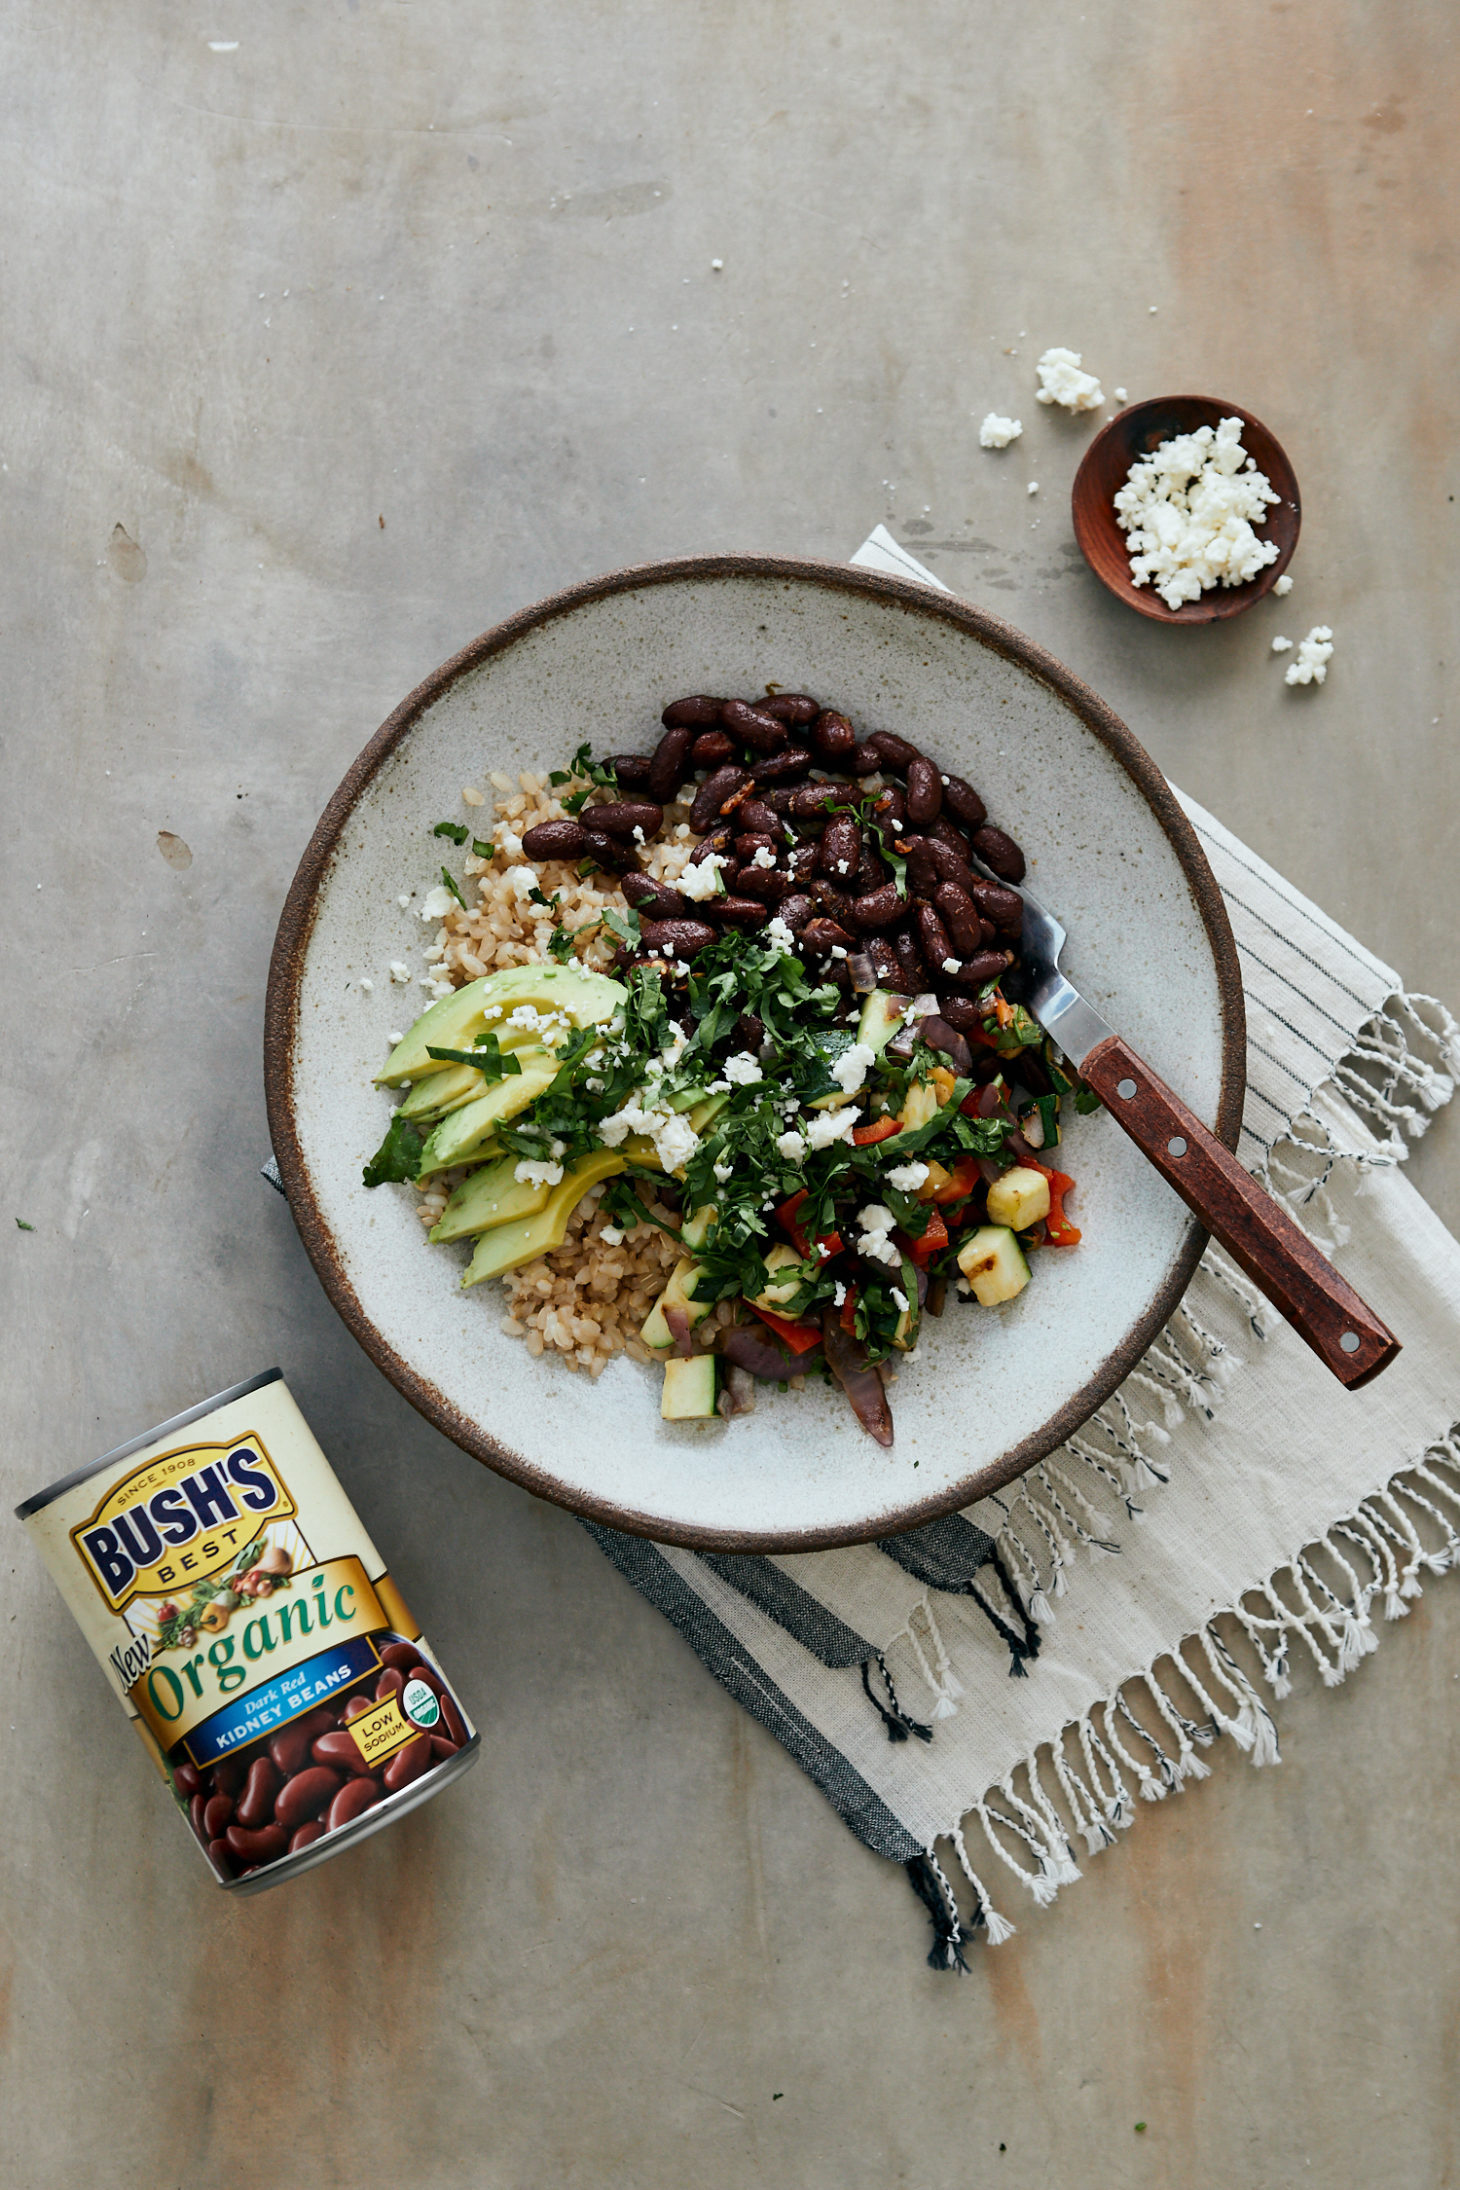 Light grey background with a small bowl of crumbled cheese and a large bowl filled with brown rice, grilled vegetables, kidney beans, and avocado.